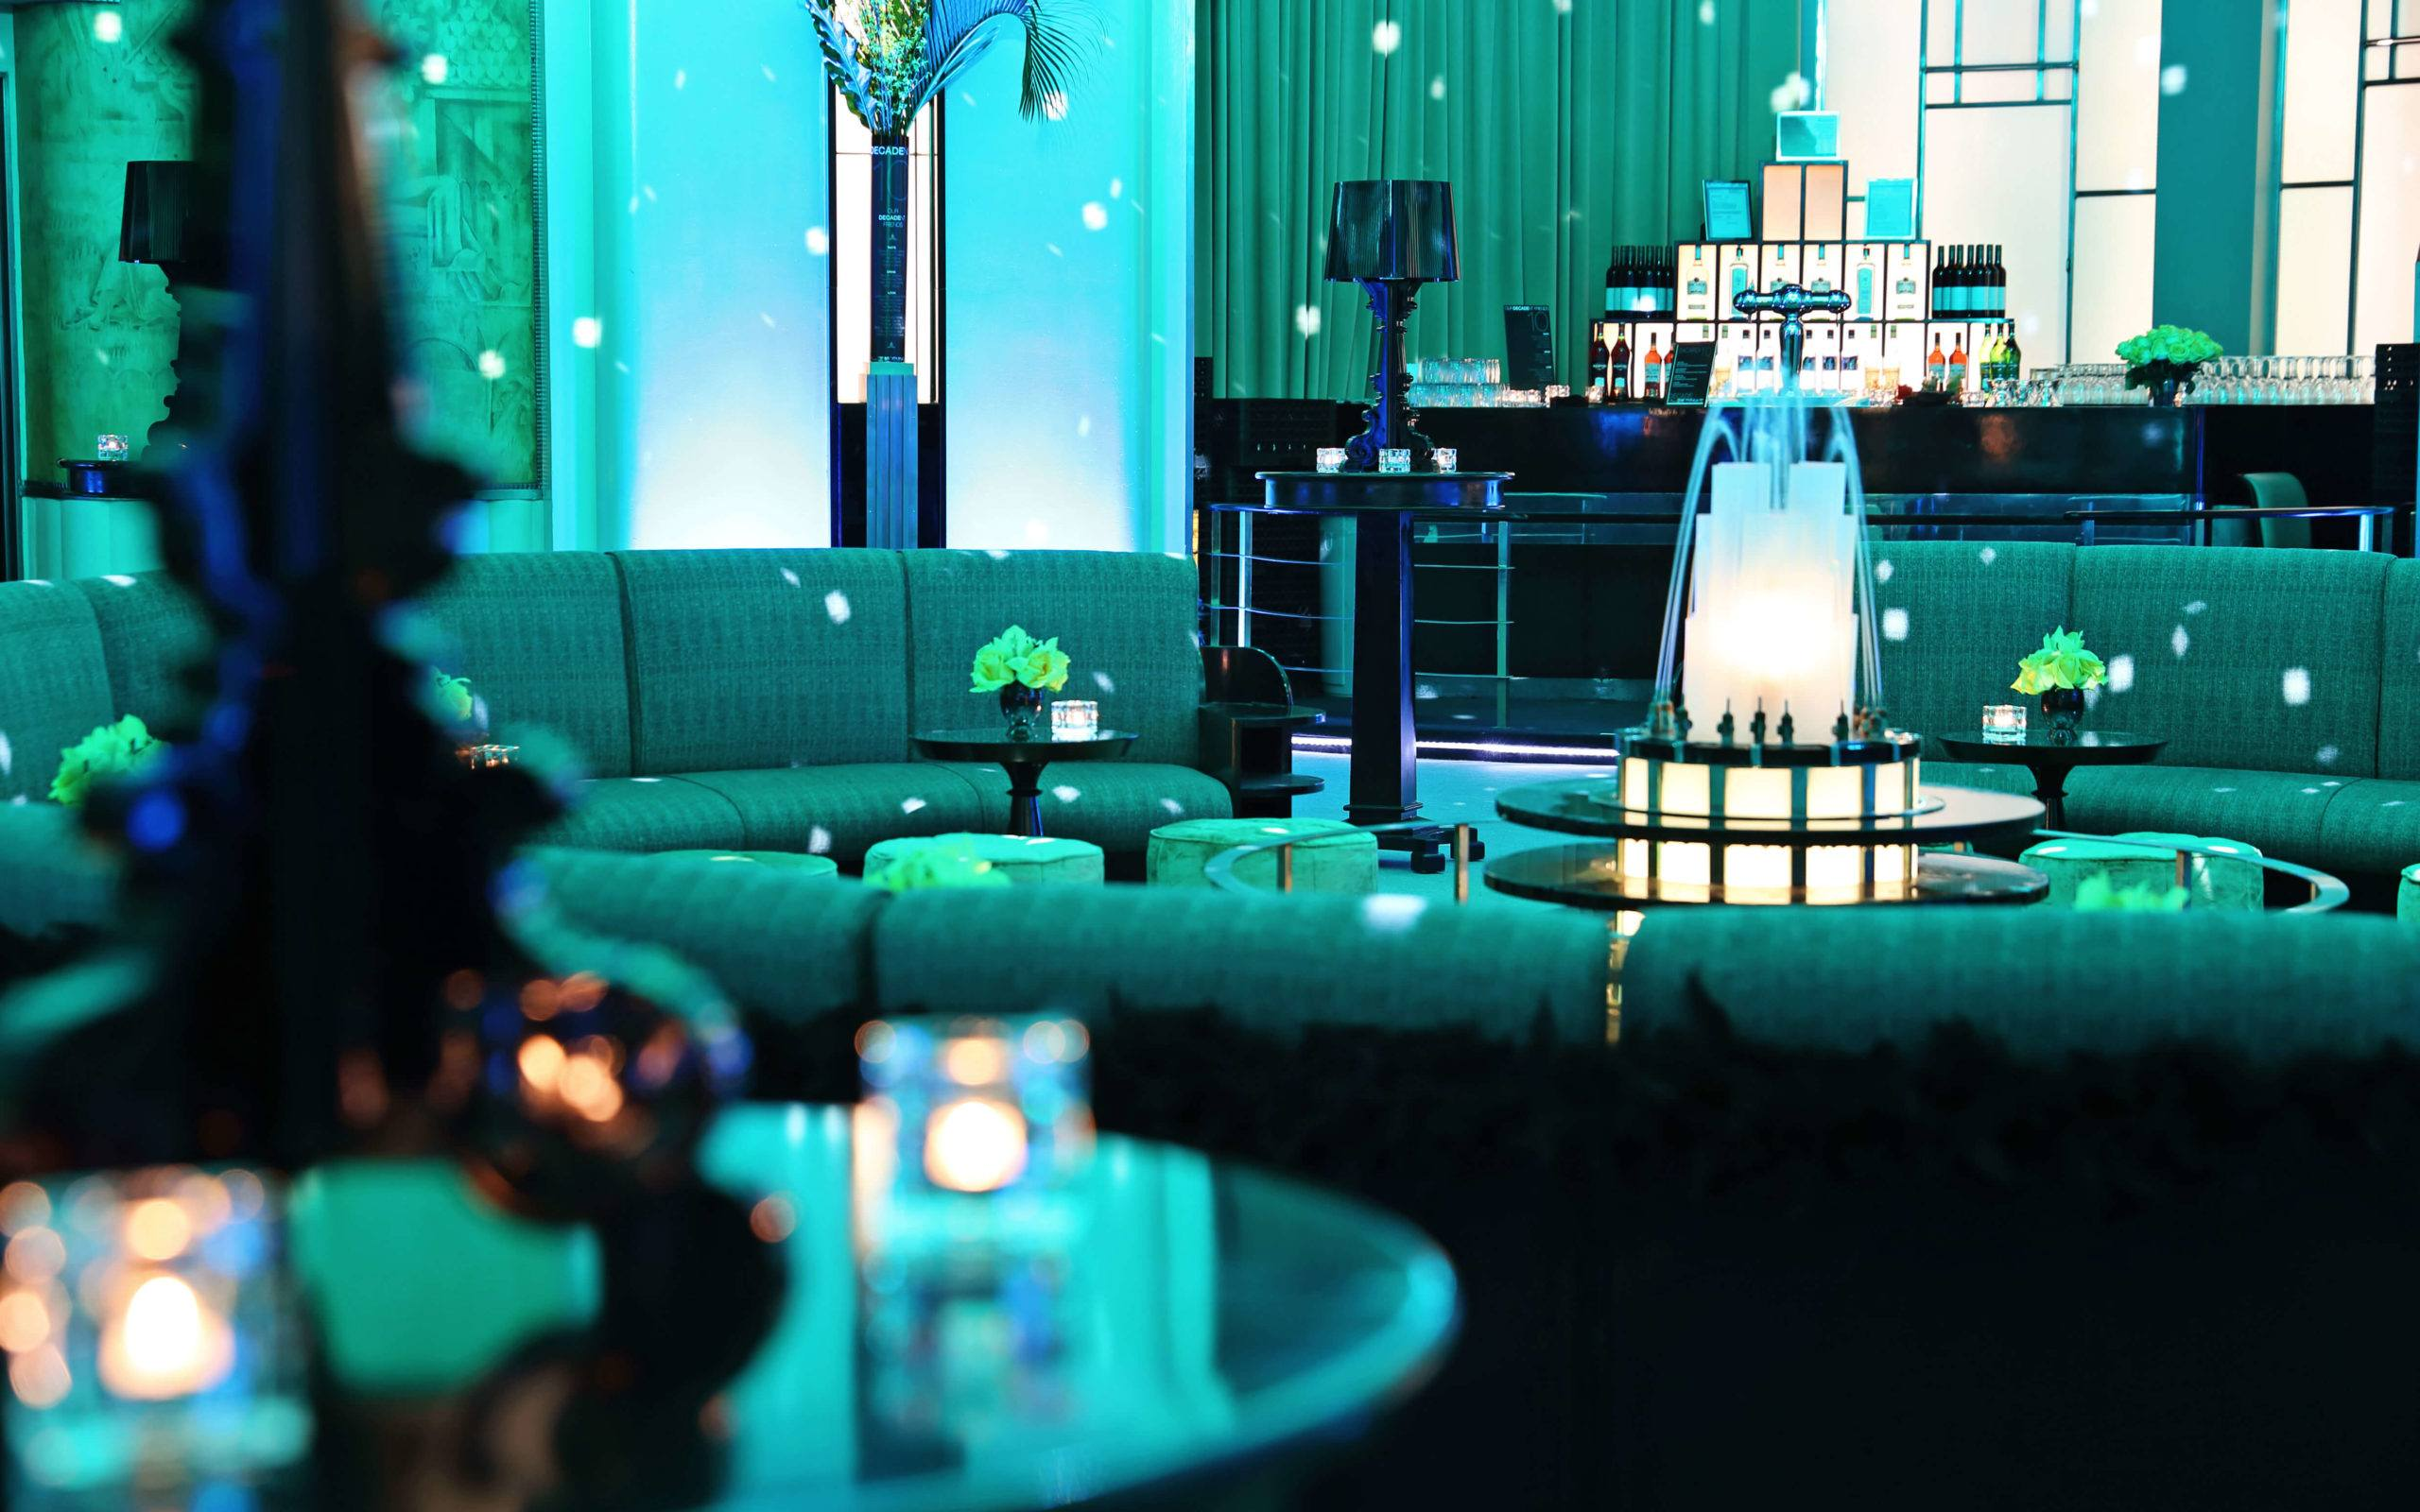 A detail shot of the fountain and seating in the Round Room at the Carlu. The room is lit with blue and green lighting.